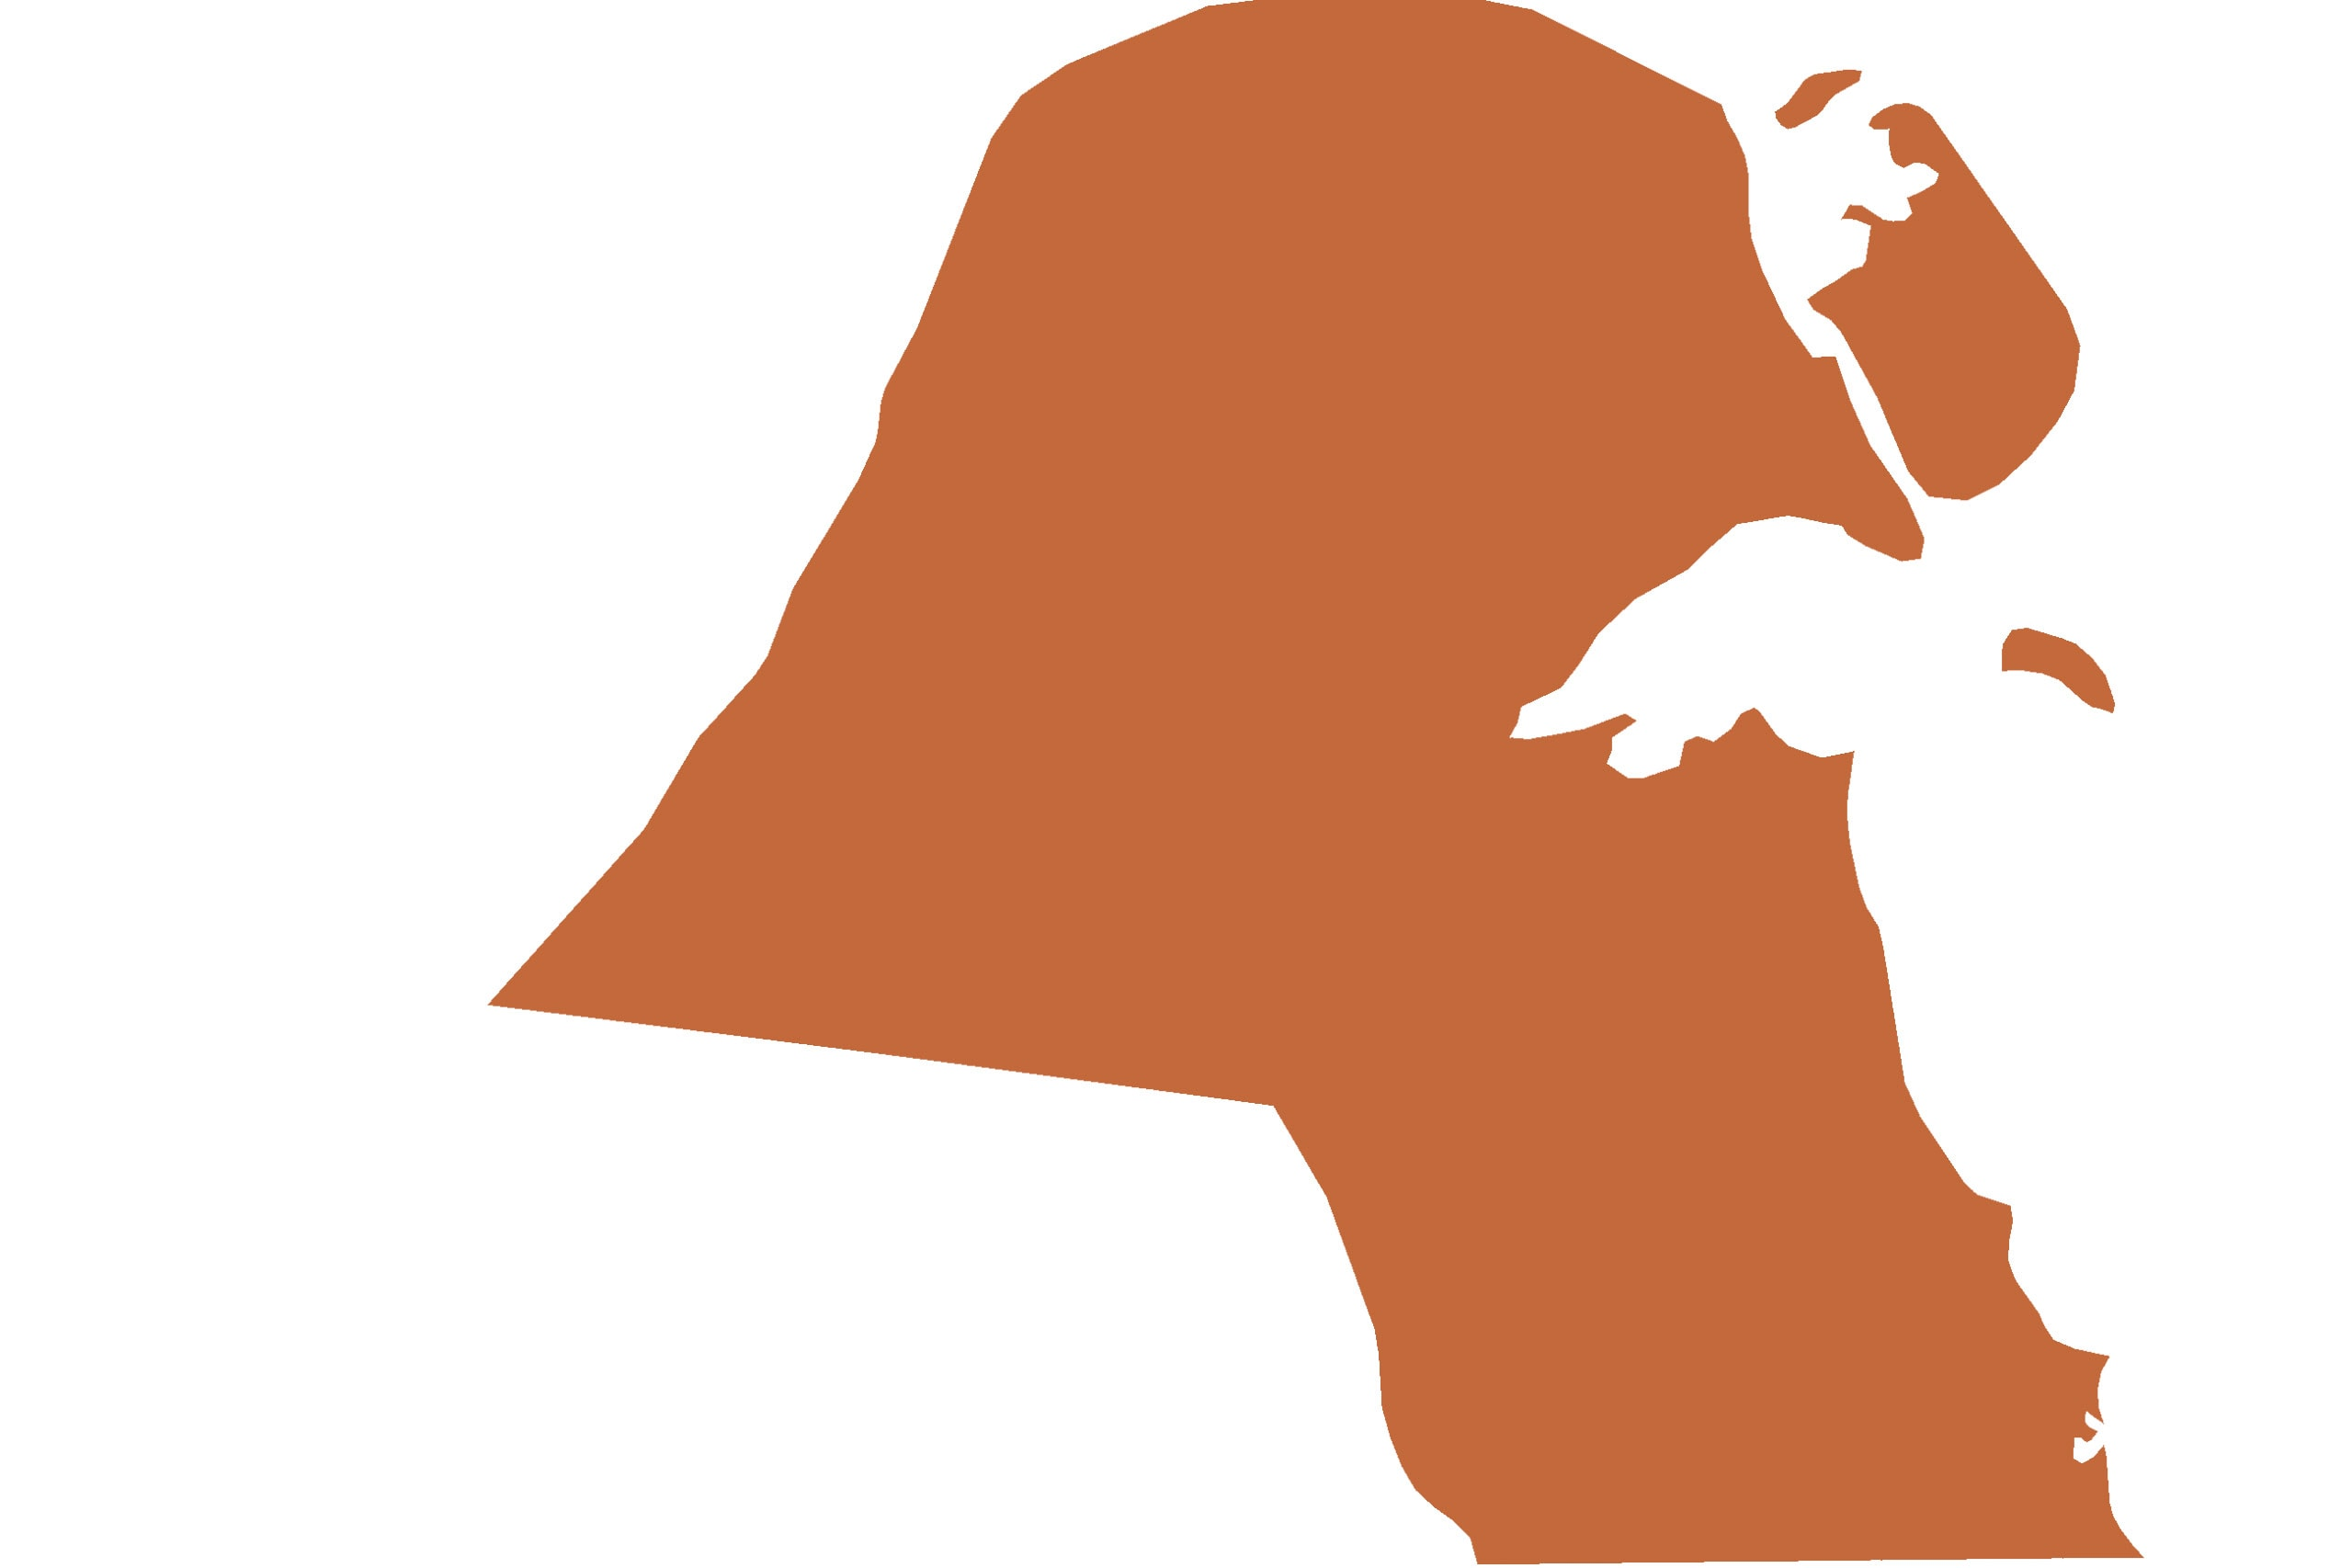 Kuwait map in orange from list of missing countries for 1 Earth City Portrait Photography Project aka NYChildren by Danny Goldfield.